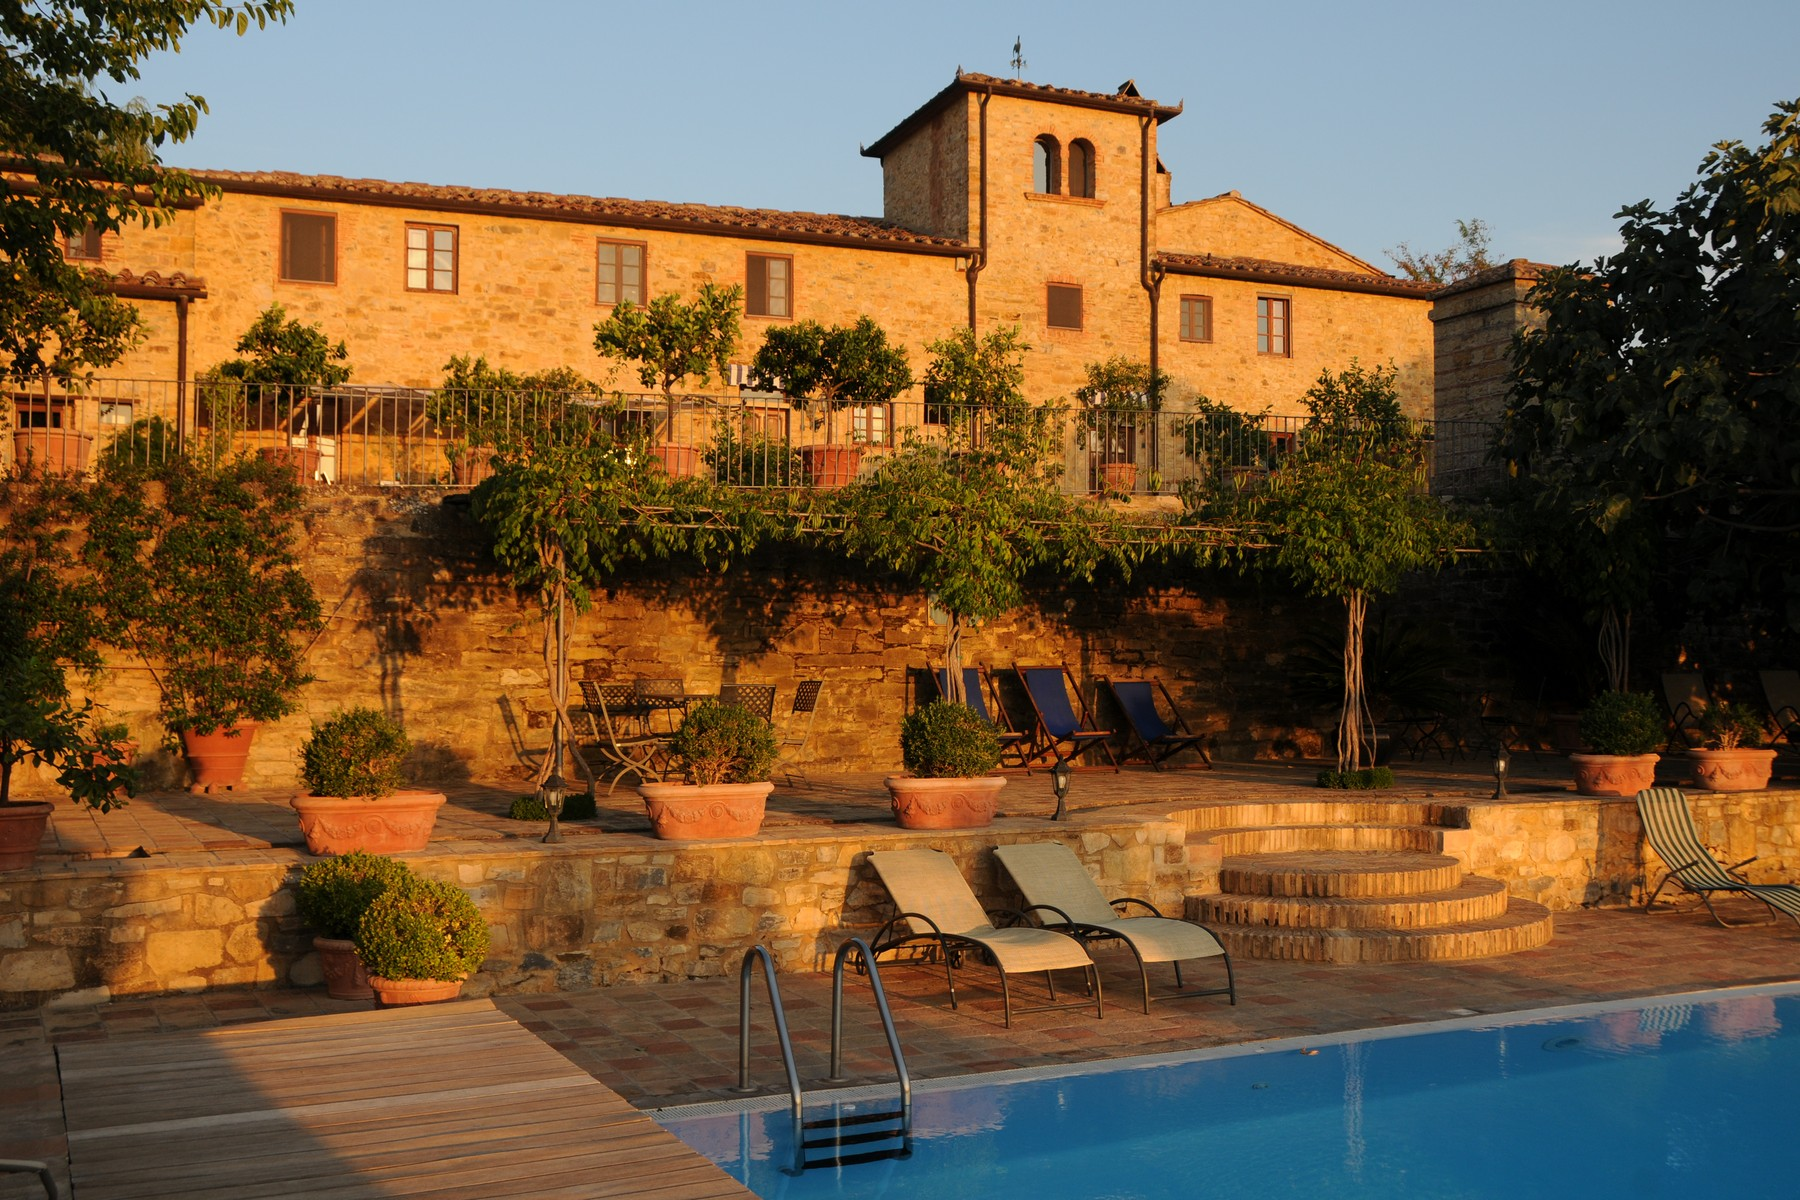 Single Family Home for Sale at Lovely villa with vineyards in the Chianti Classico Strada Cerbaia Firenze, 50028 Italy